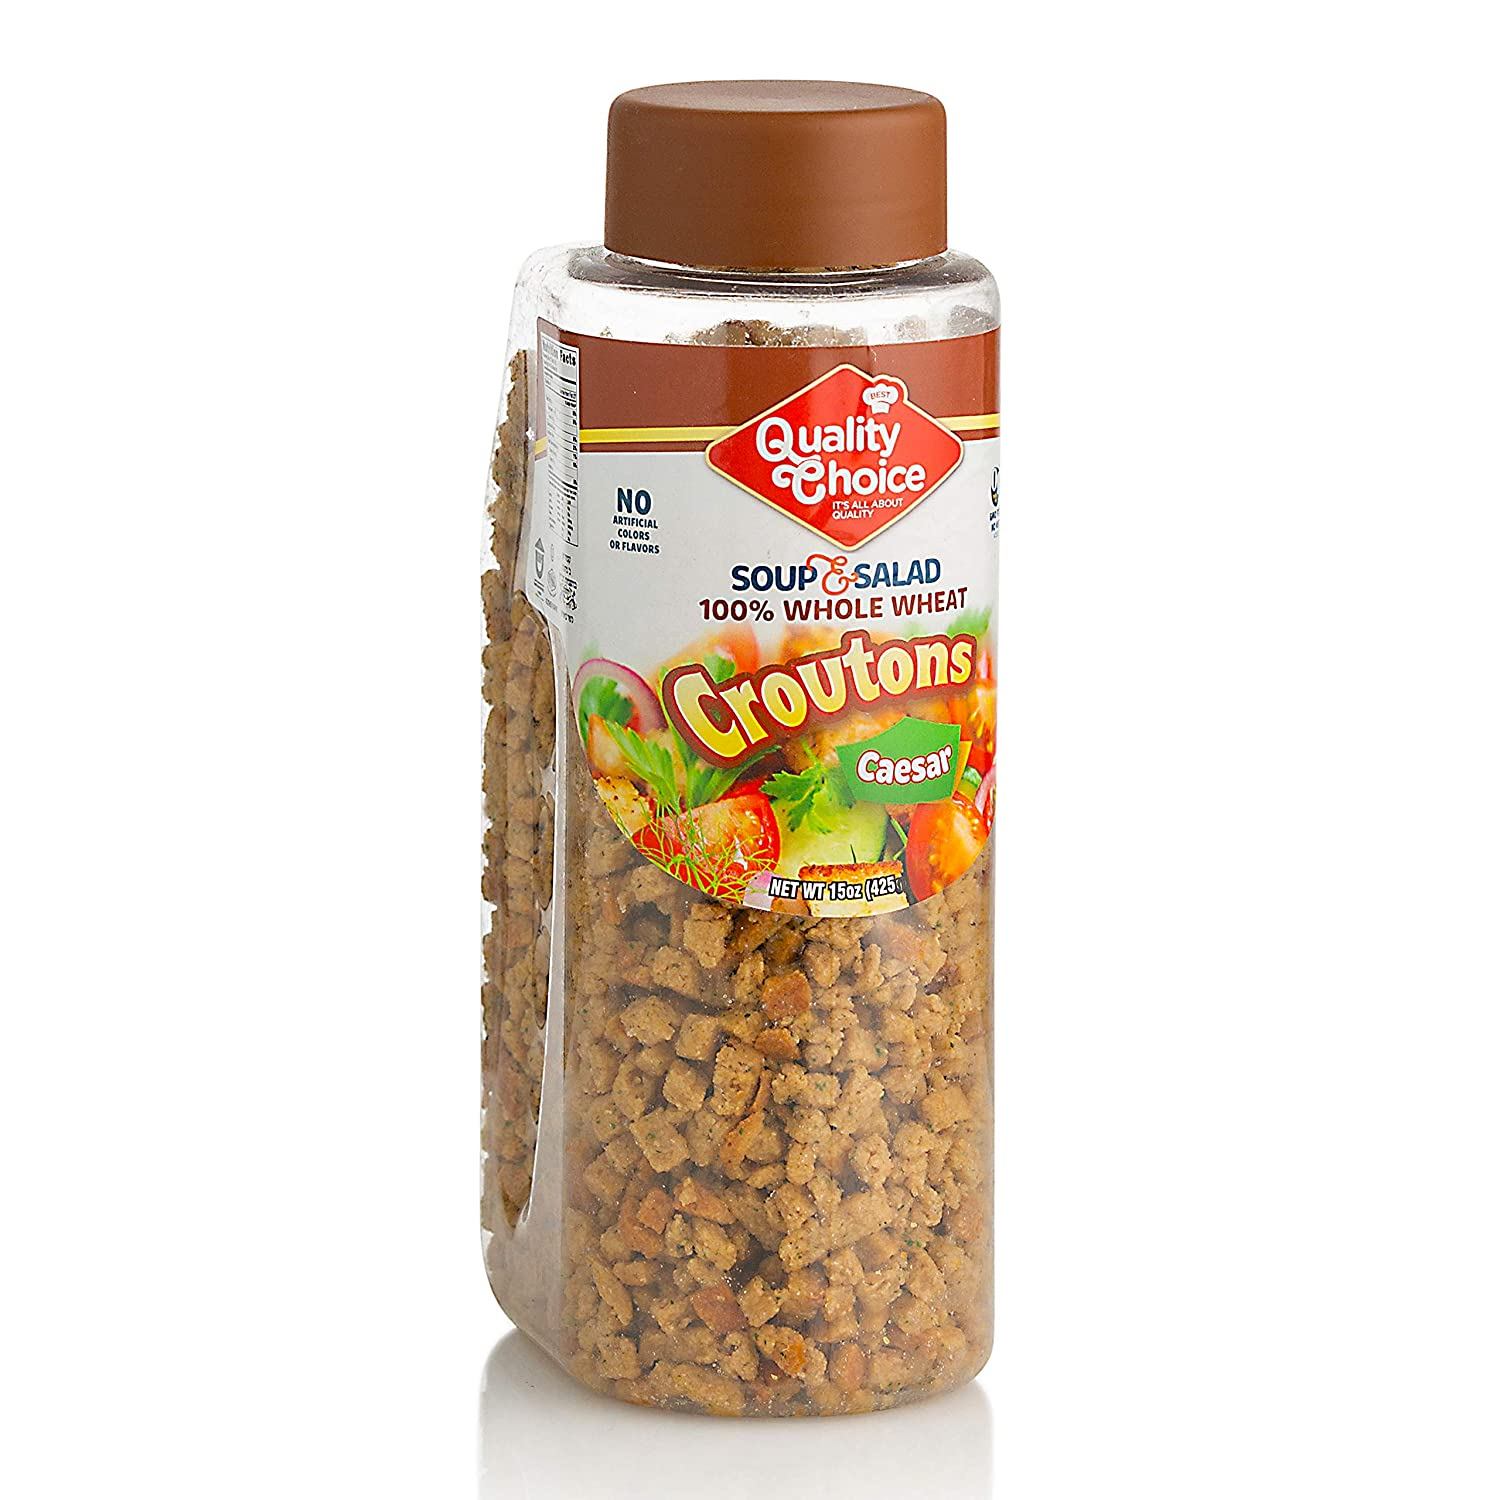 Whole Wheat Mini Croutons For Salad And - Soup Sales of SALE items from new Fees free!! works Oz. F 15 Caesar